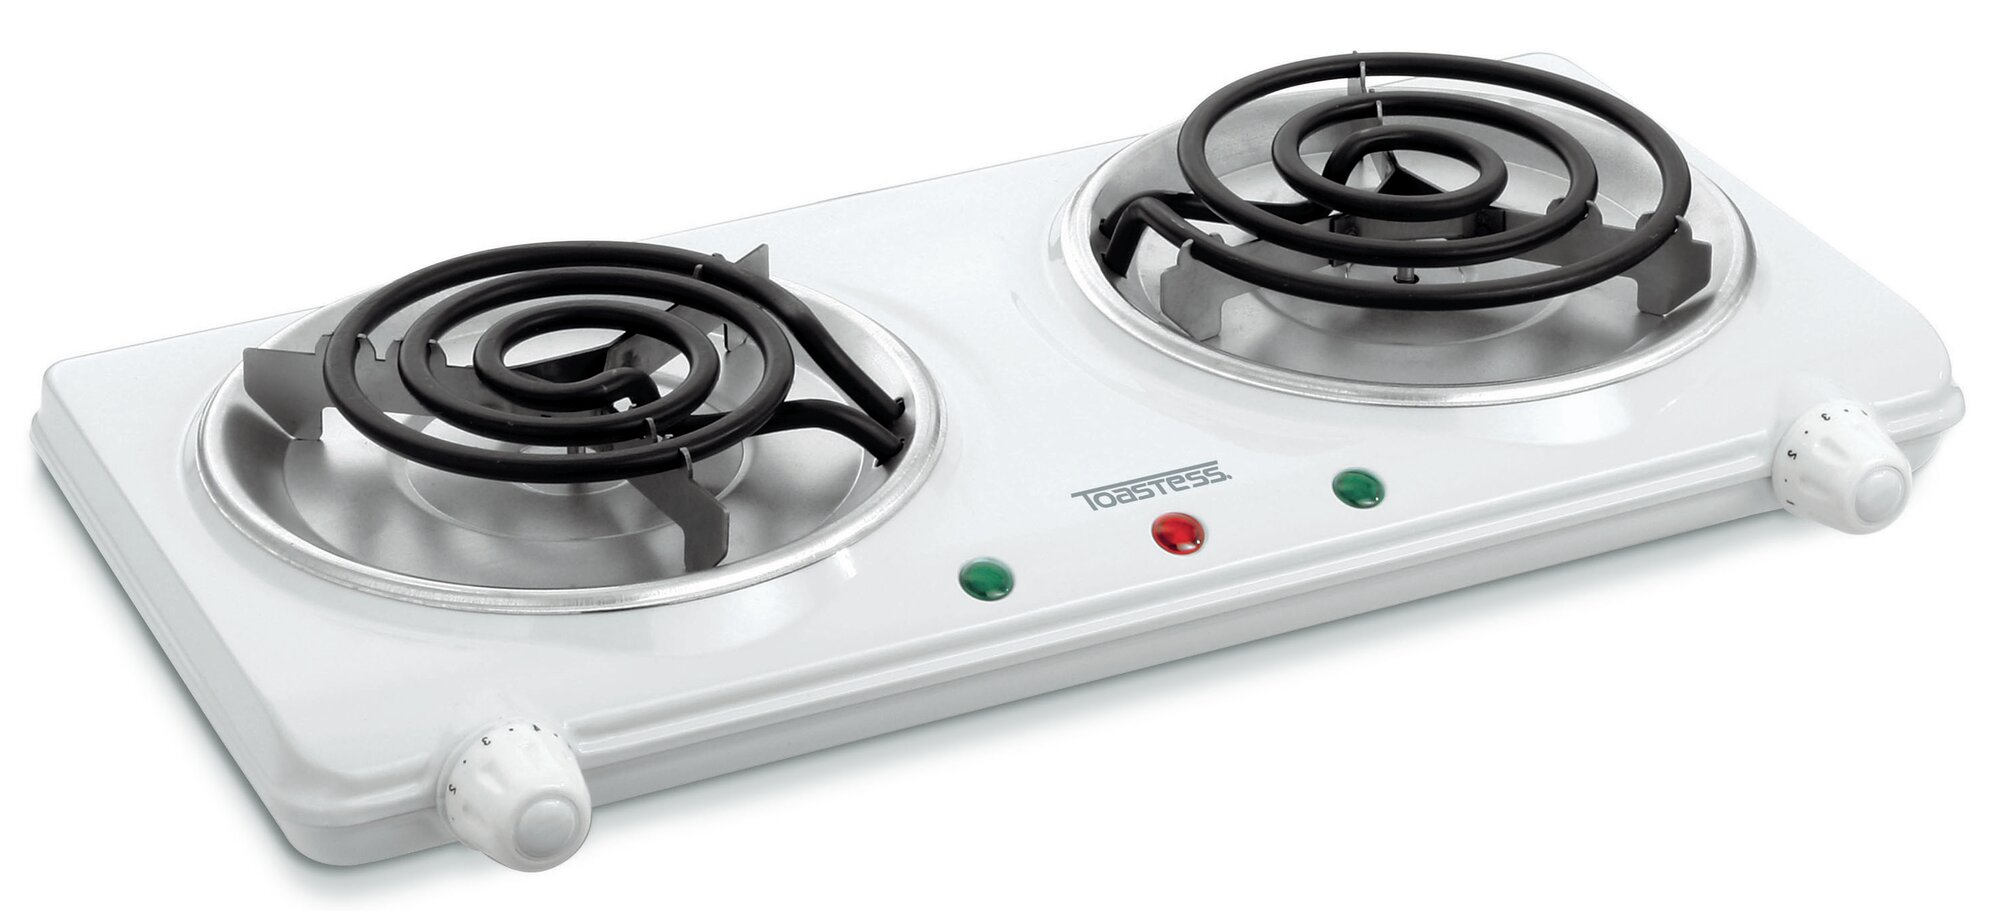 Portable Electric Cooktop ~ Salton portable quot electric cooktop with burners